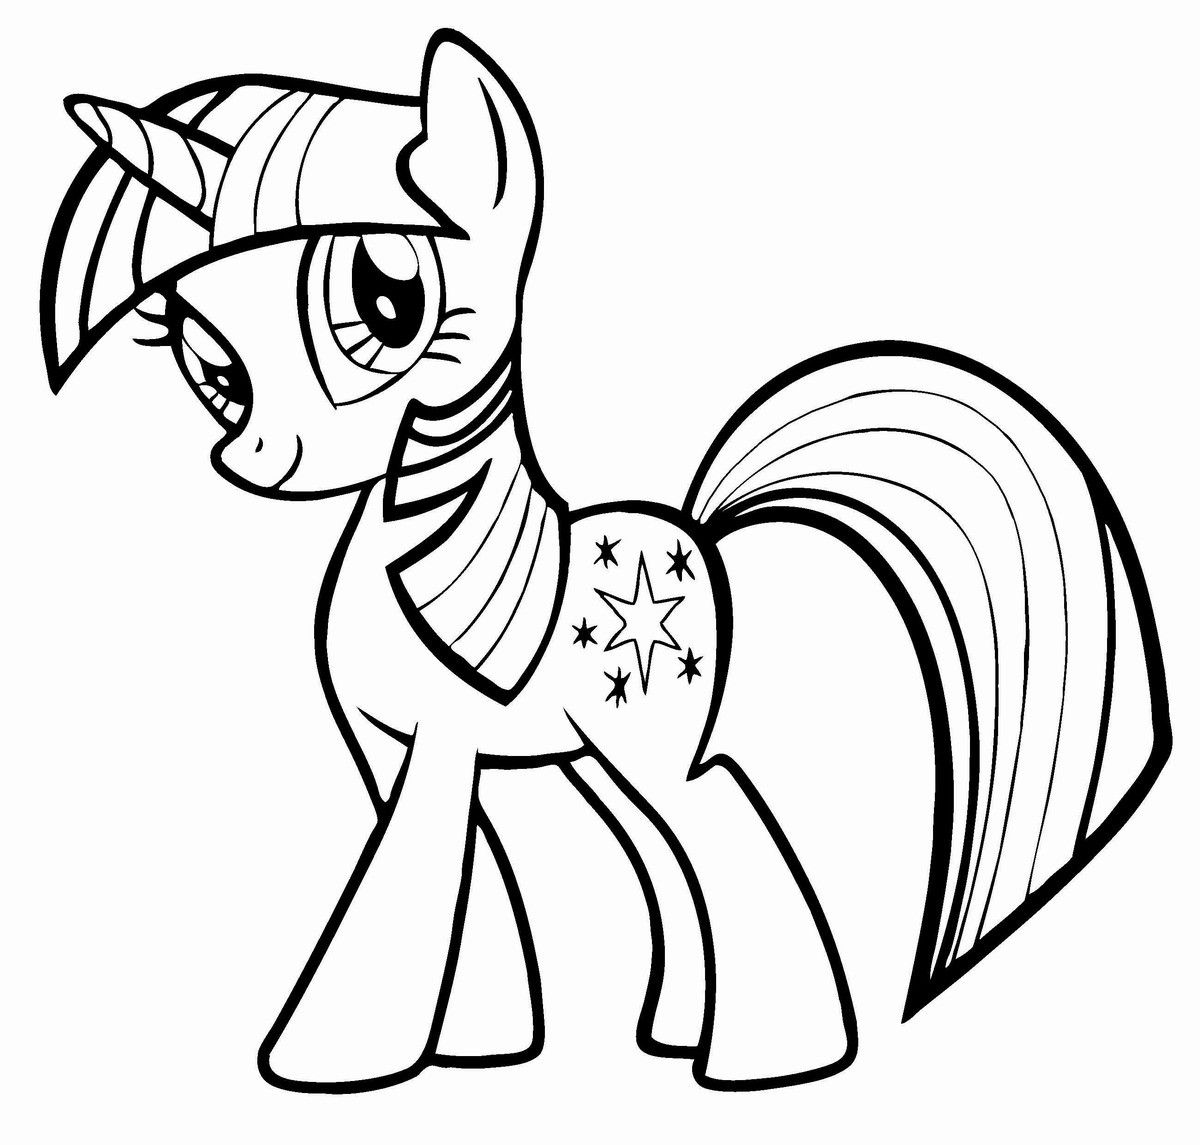 My Little Pony Coloring Pages Free From The Thousand Photographs On Line In Relation T My Little Pony Drawing My Little Pony Coloring My Little Pony Twilight